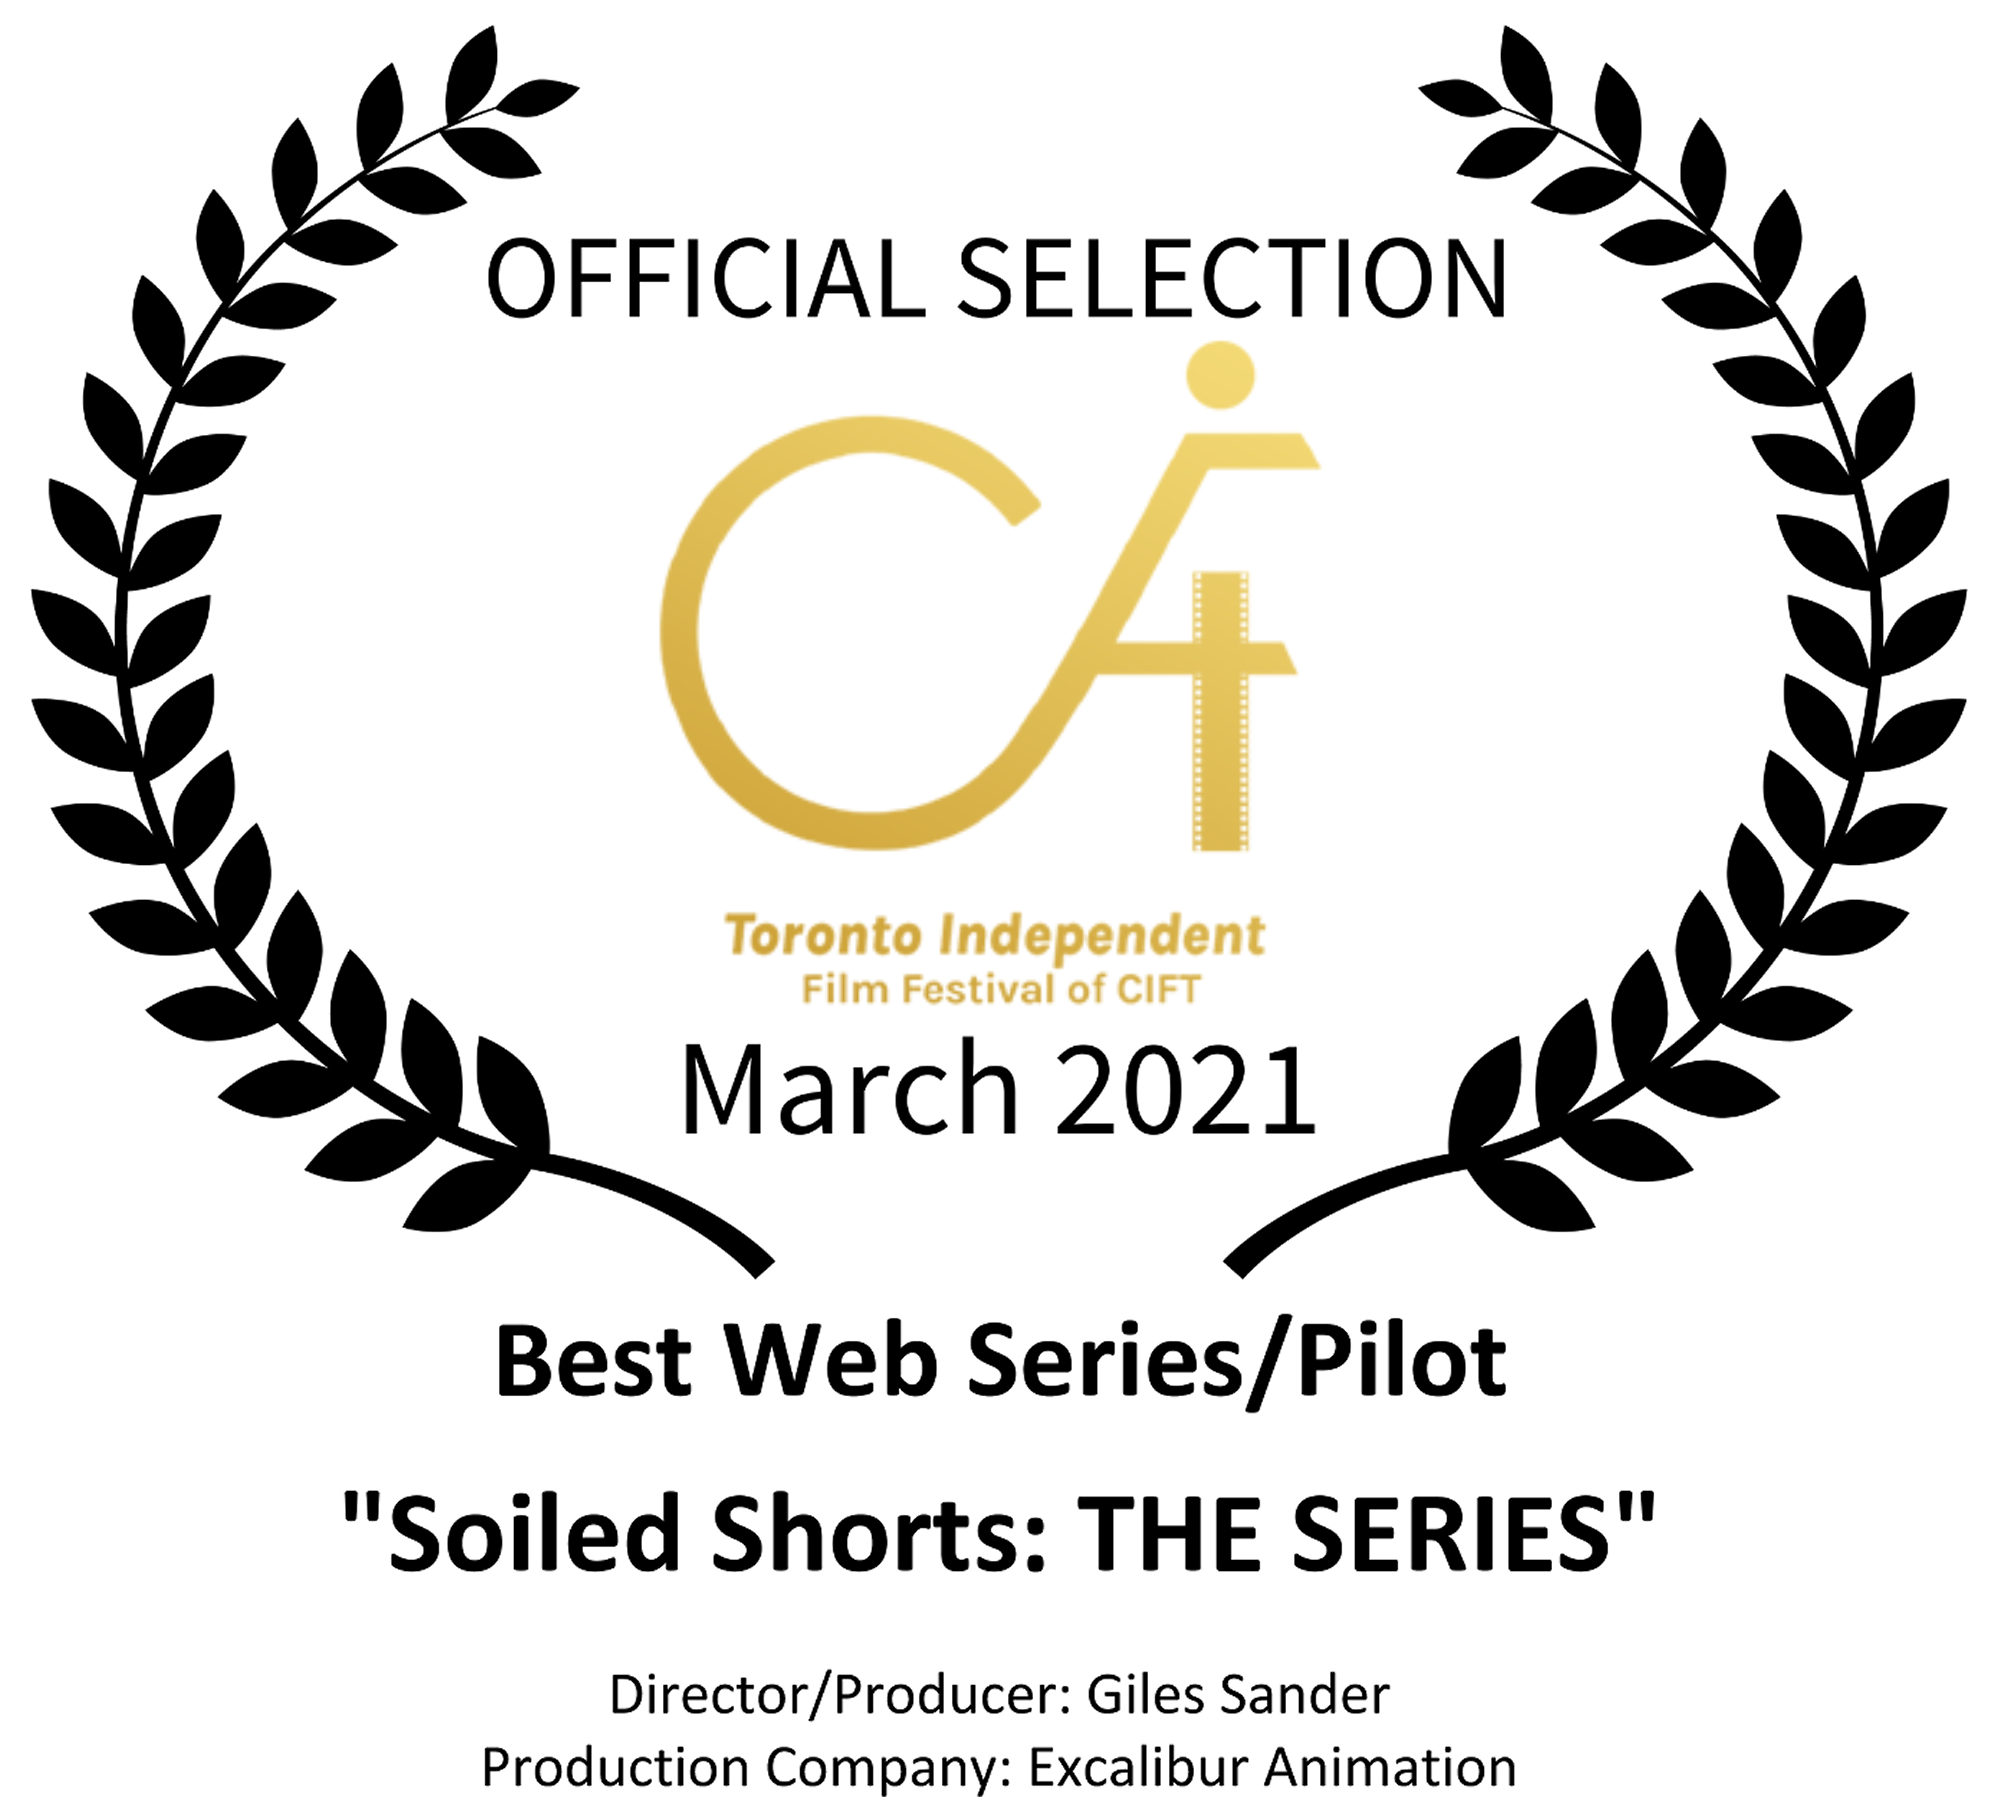 Official Selection - Toronto Independent Film Festival of CIFT  2021